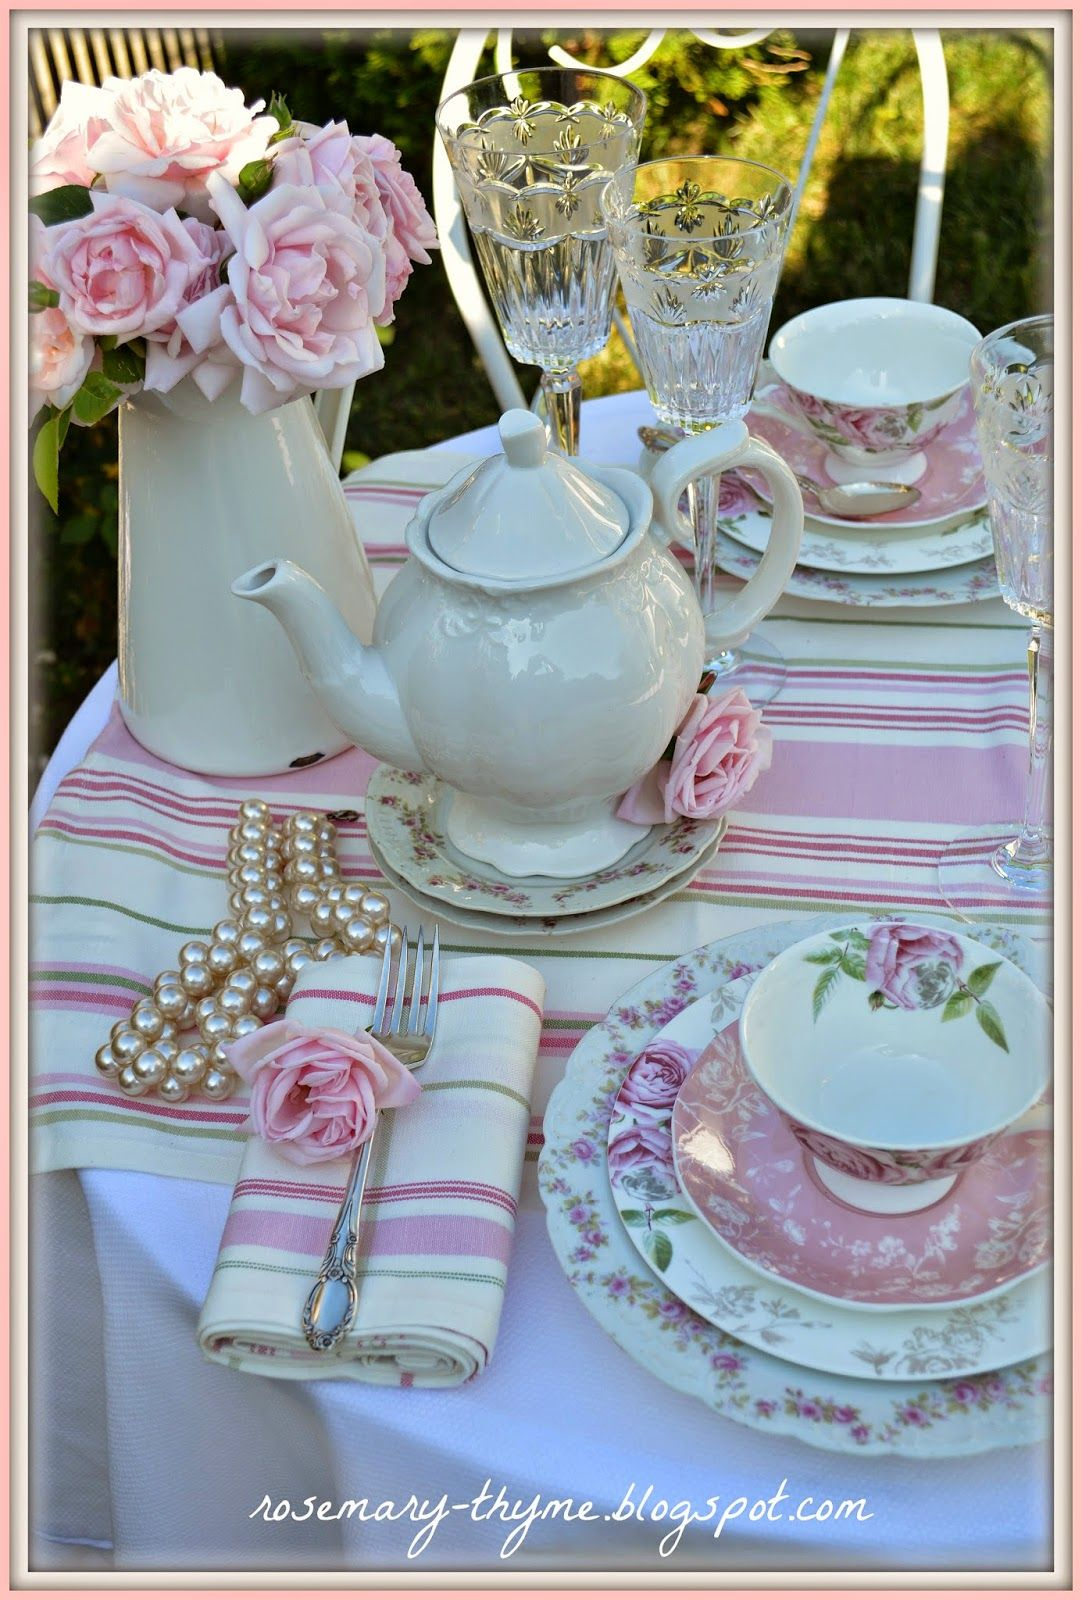 Celebrating Roses. Tea Party TableTea ... & Celebrating Roses | Rose Teas and Tea parties